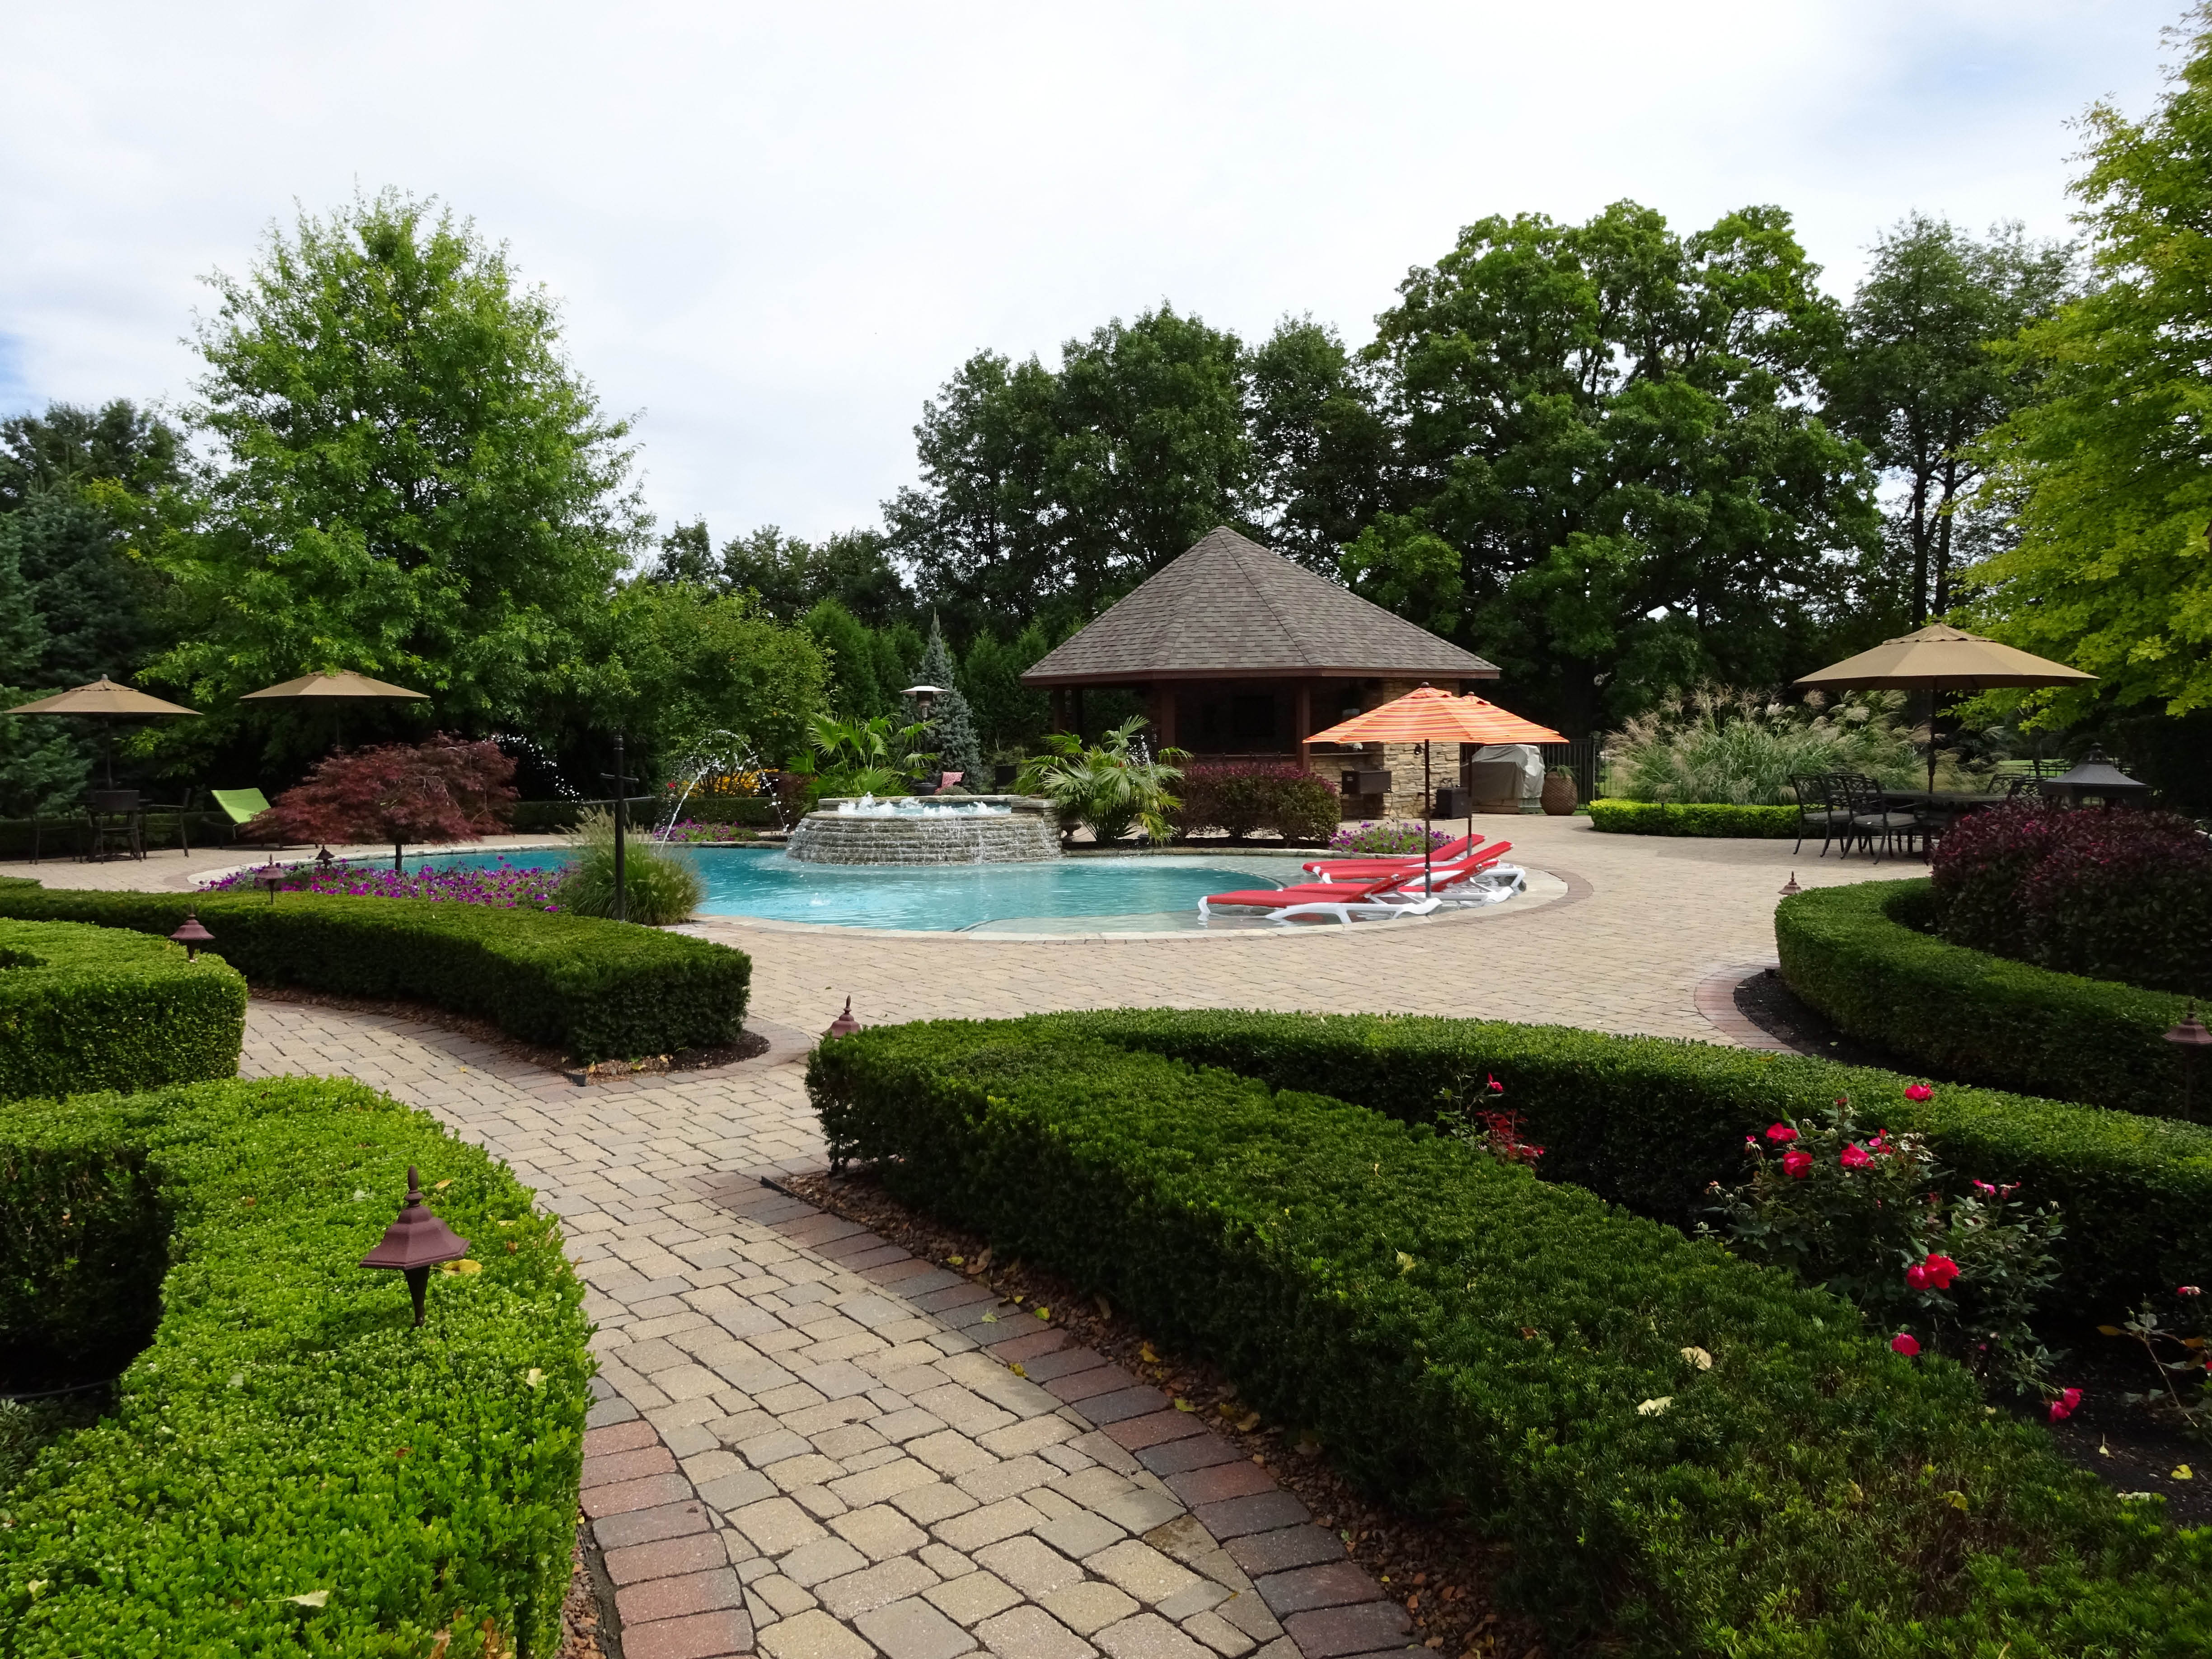 pool landscaping, patio landscaping, walkway landscaping, retaining wall construction, landscape design